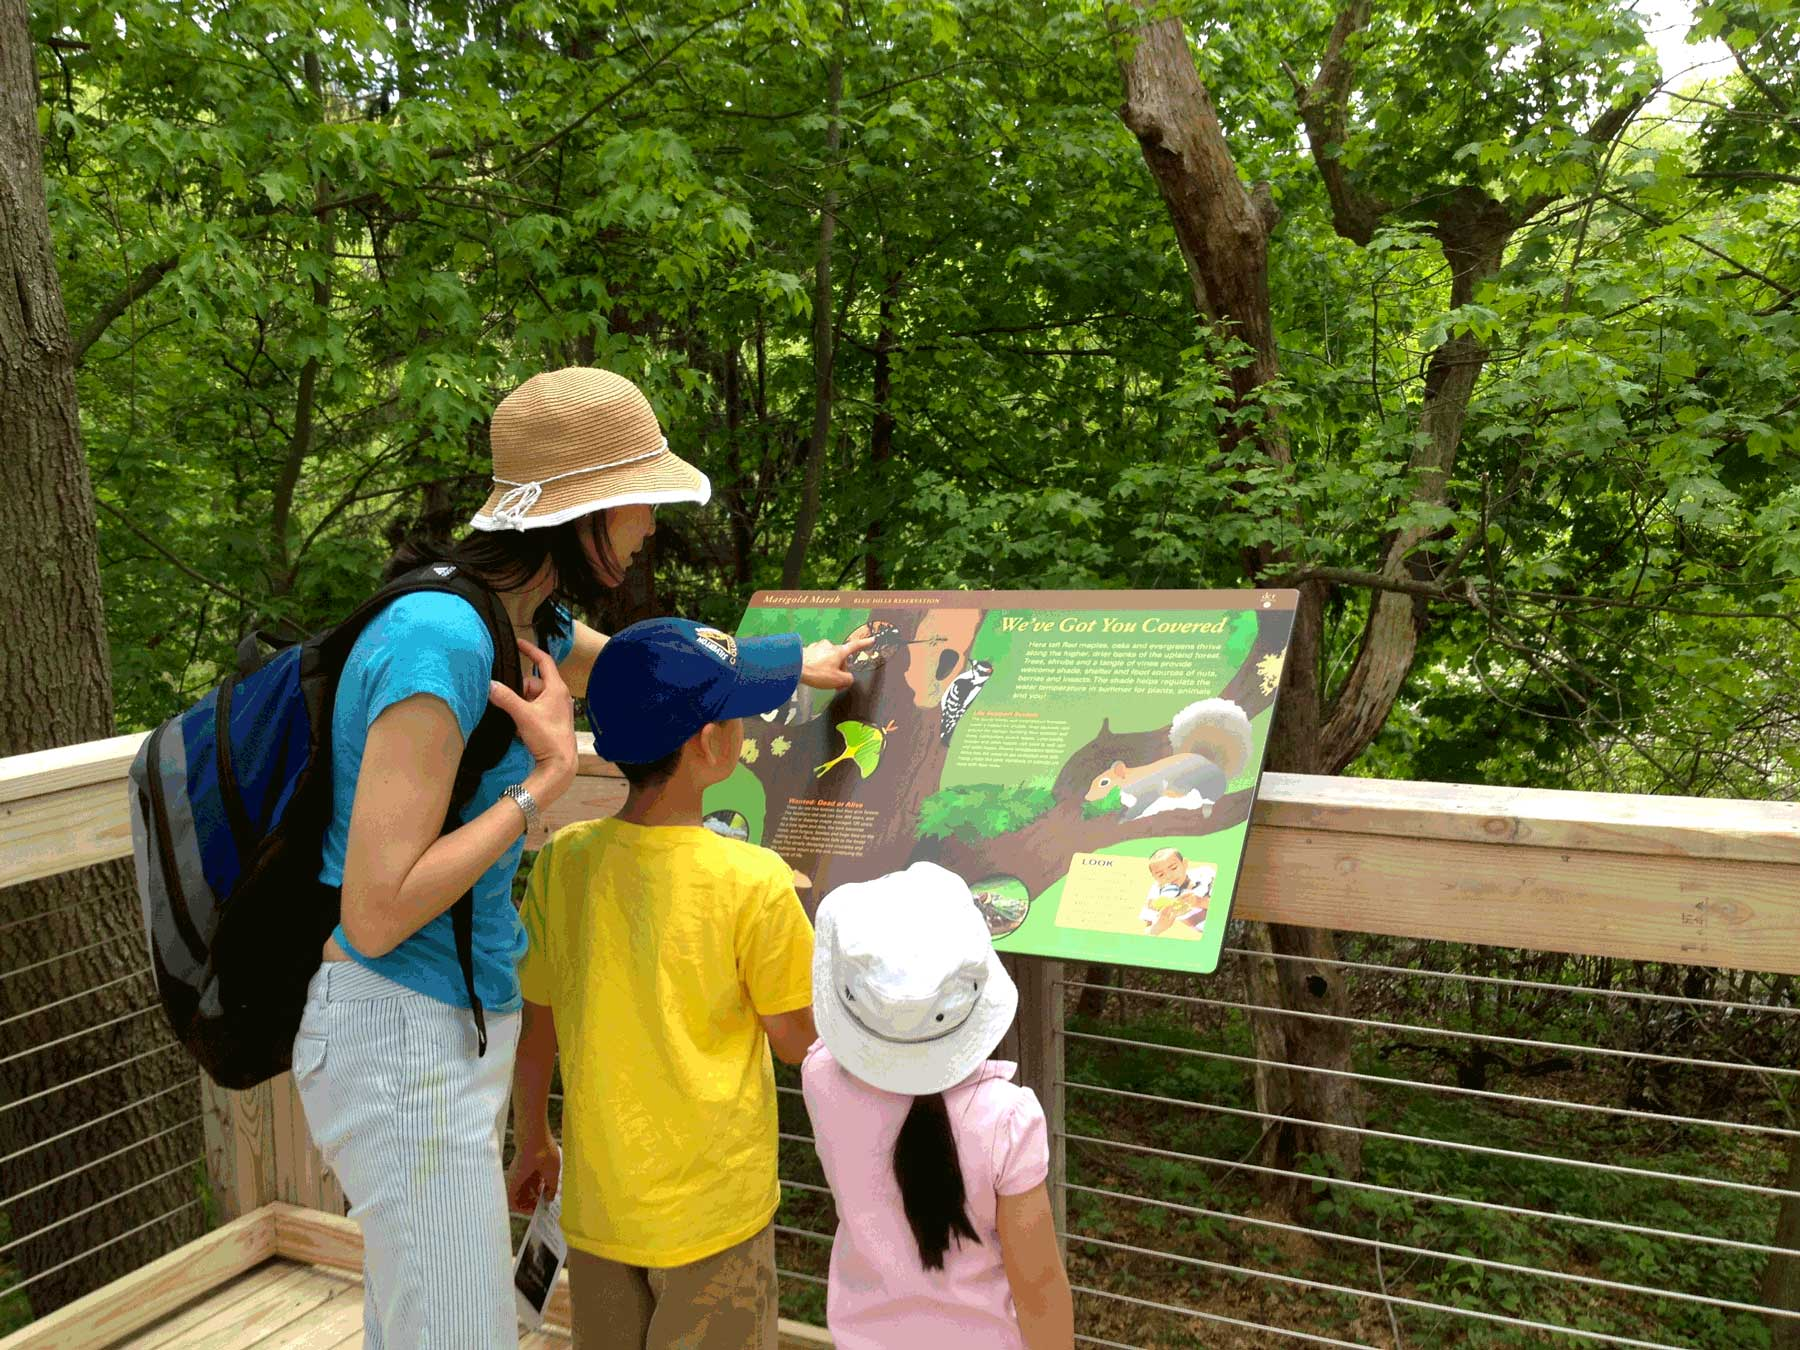 It is located in the woodiest portion of the boardwalk so visitors can detect the shelf fungi, downy woodpeckers, and gray squirrels.